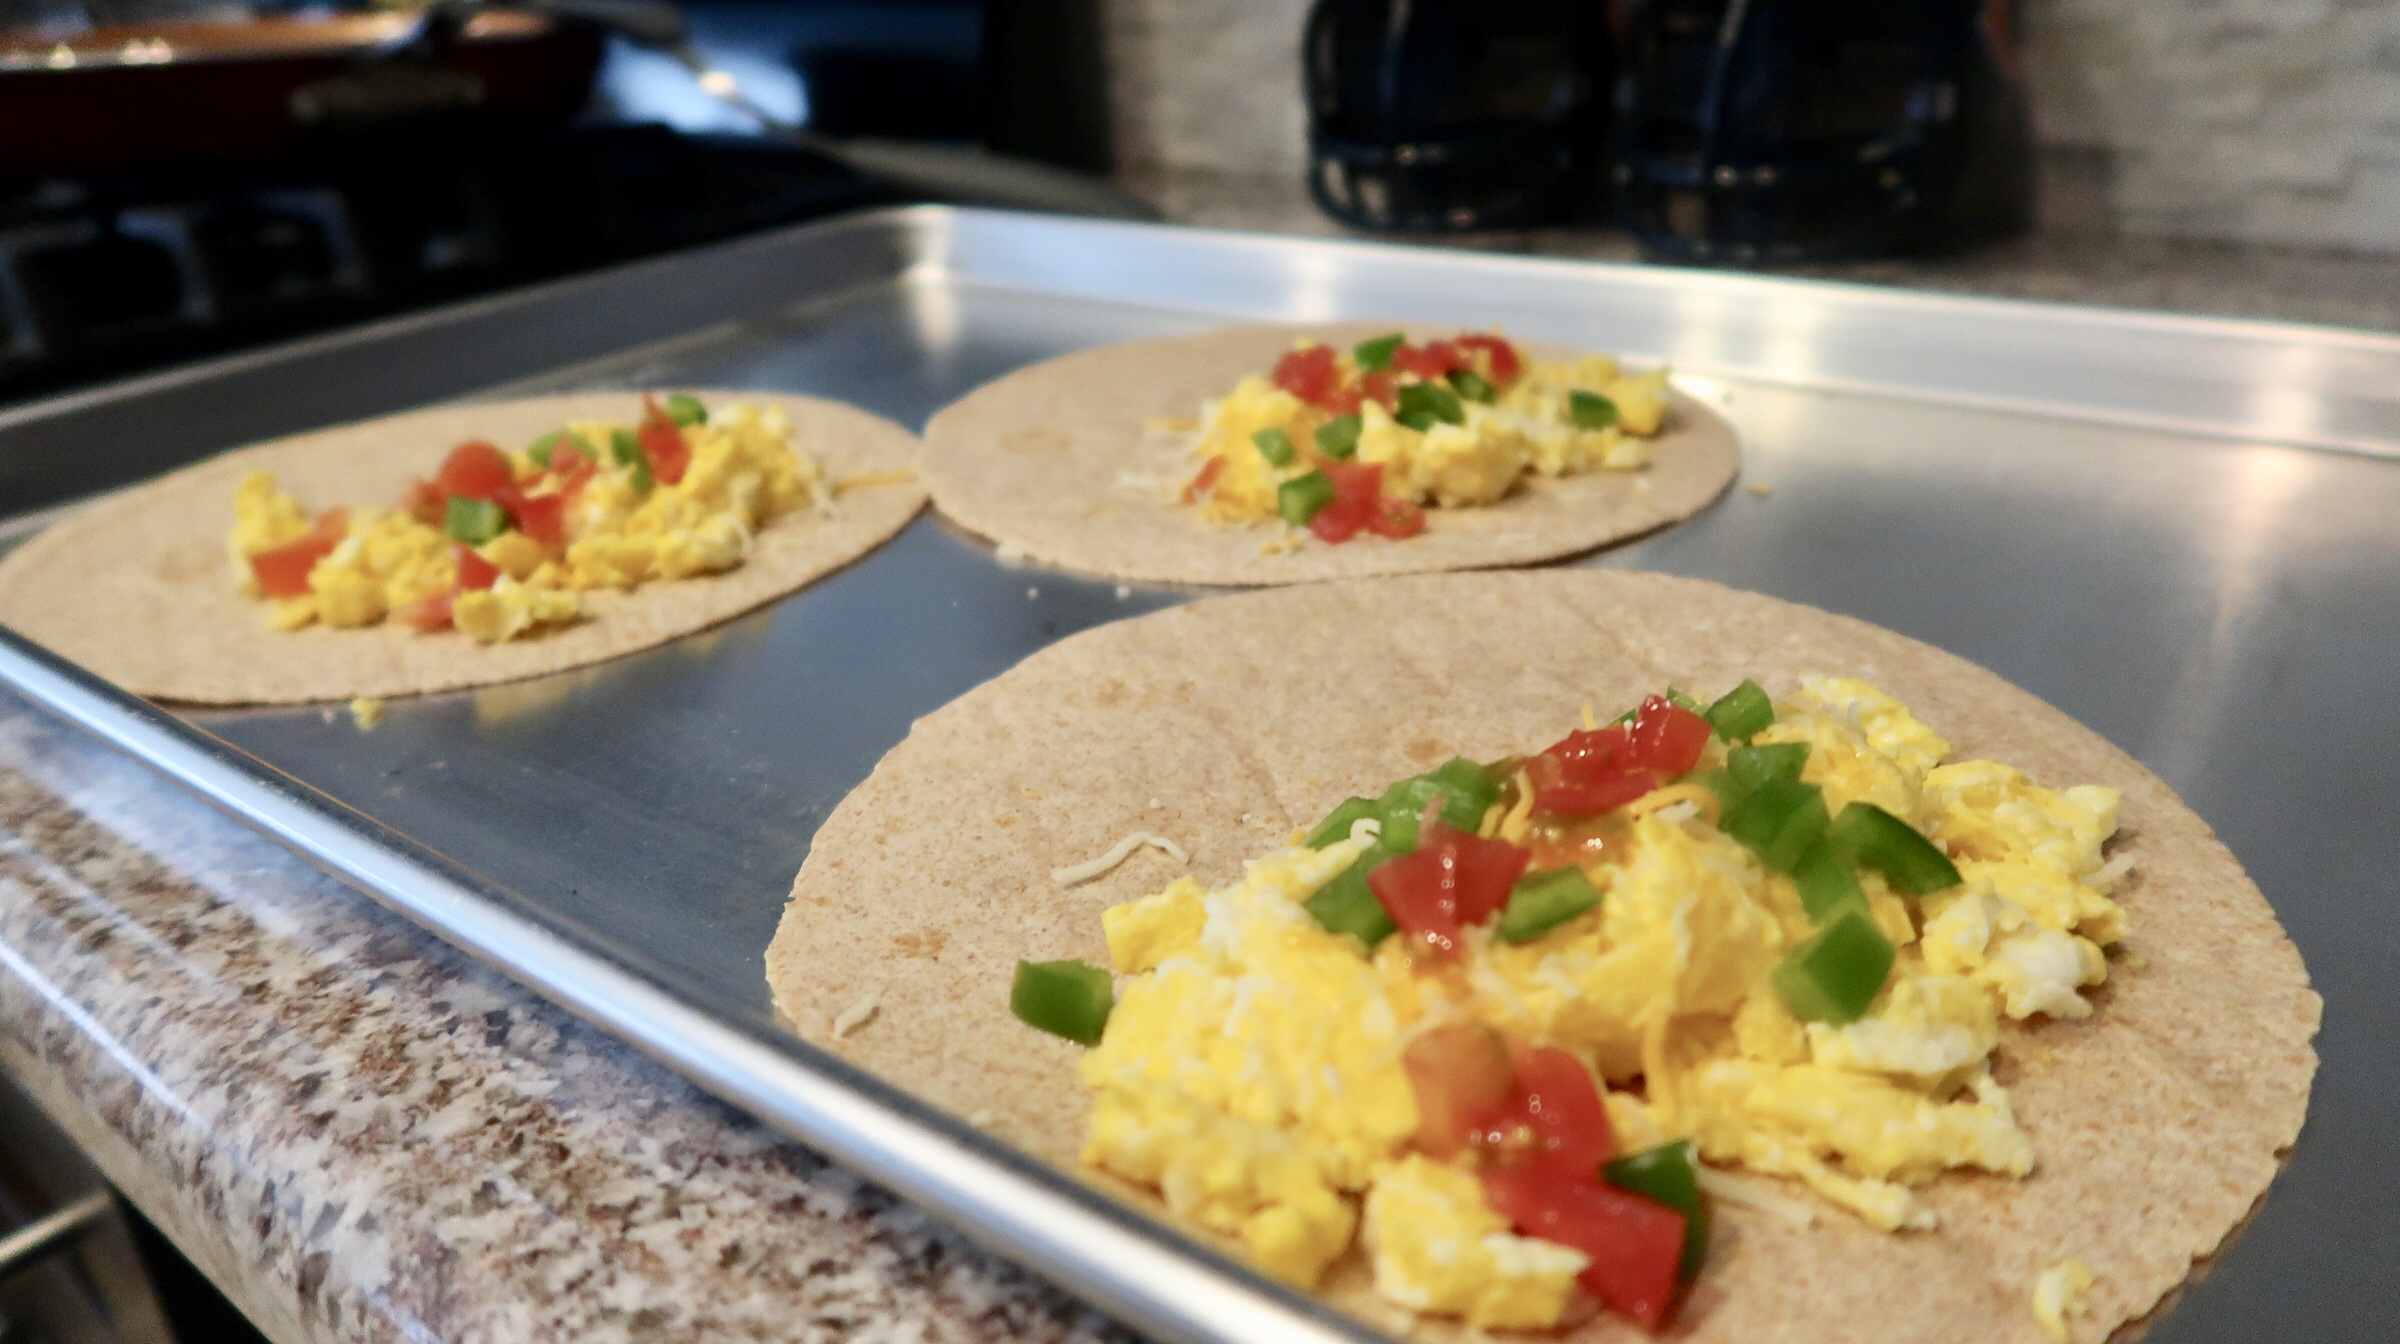 On the go egg breakfast burrito recipe preparation